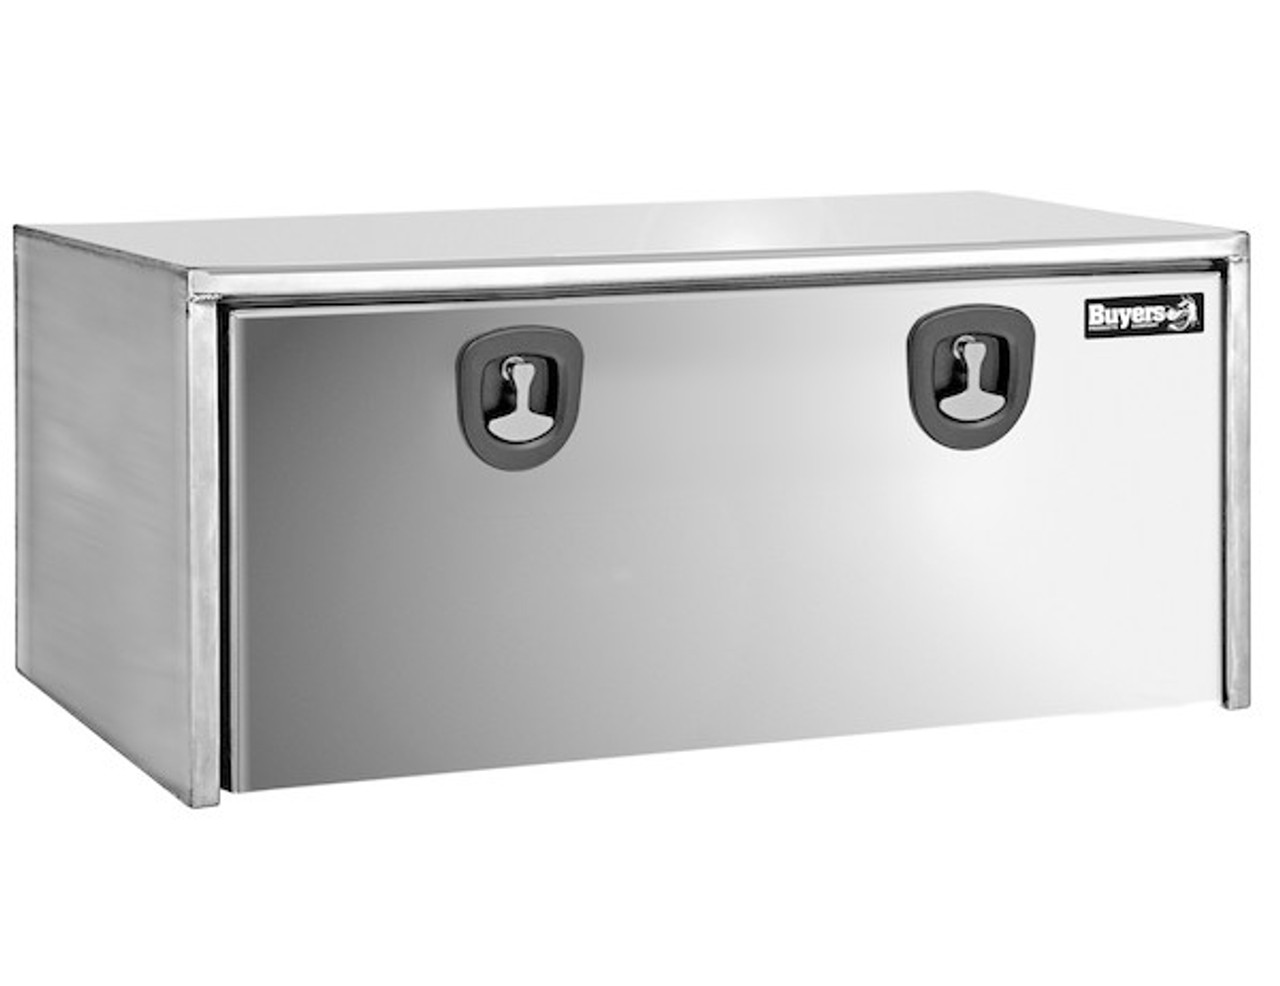 1702610 BUYERS PRODUCTS STAINLESS STEEL UNDERBODY TRUCK BOX WITH POLISHED STAINLESS STEEL DOOR TOOLBOX